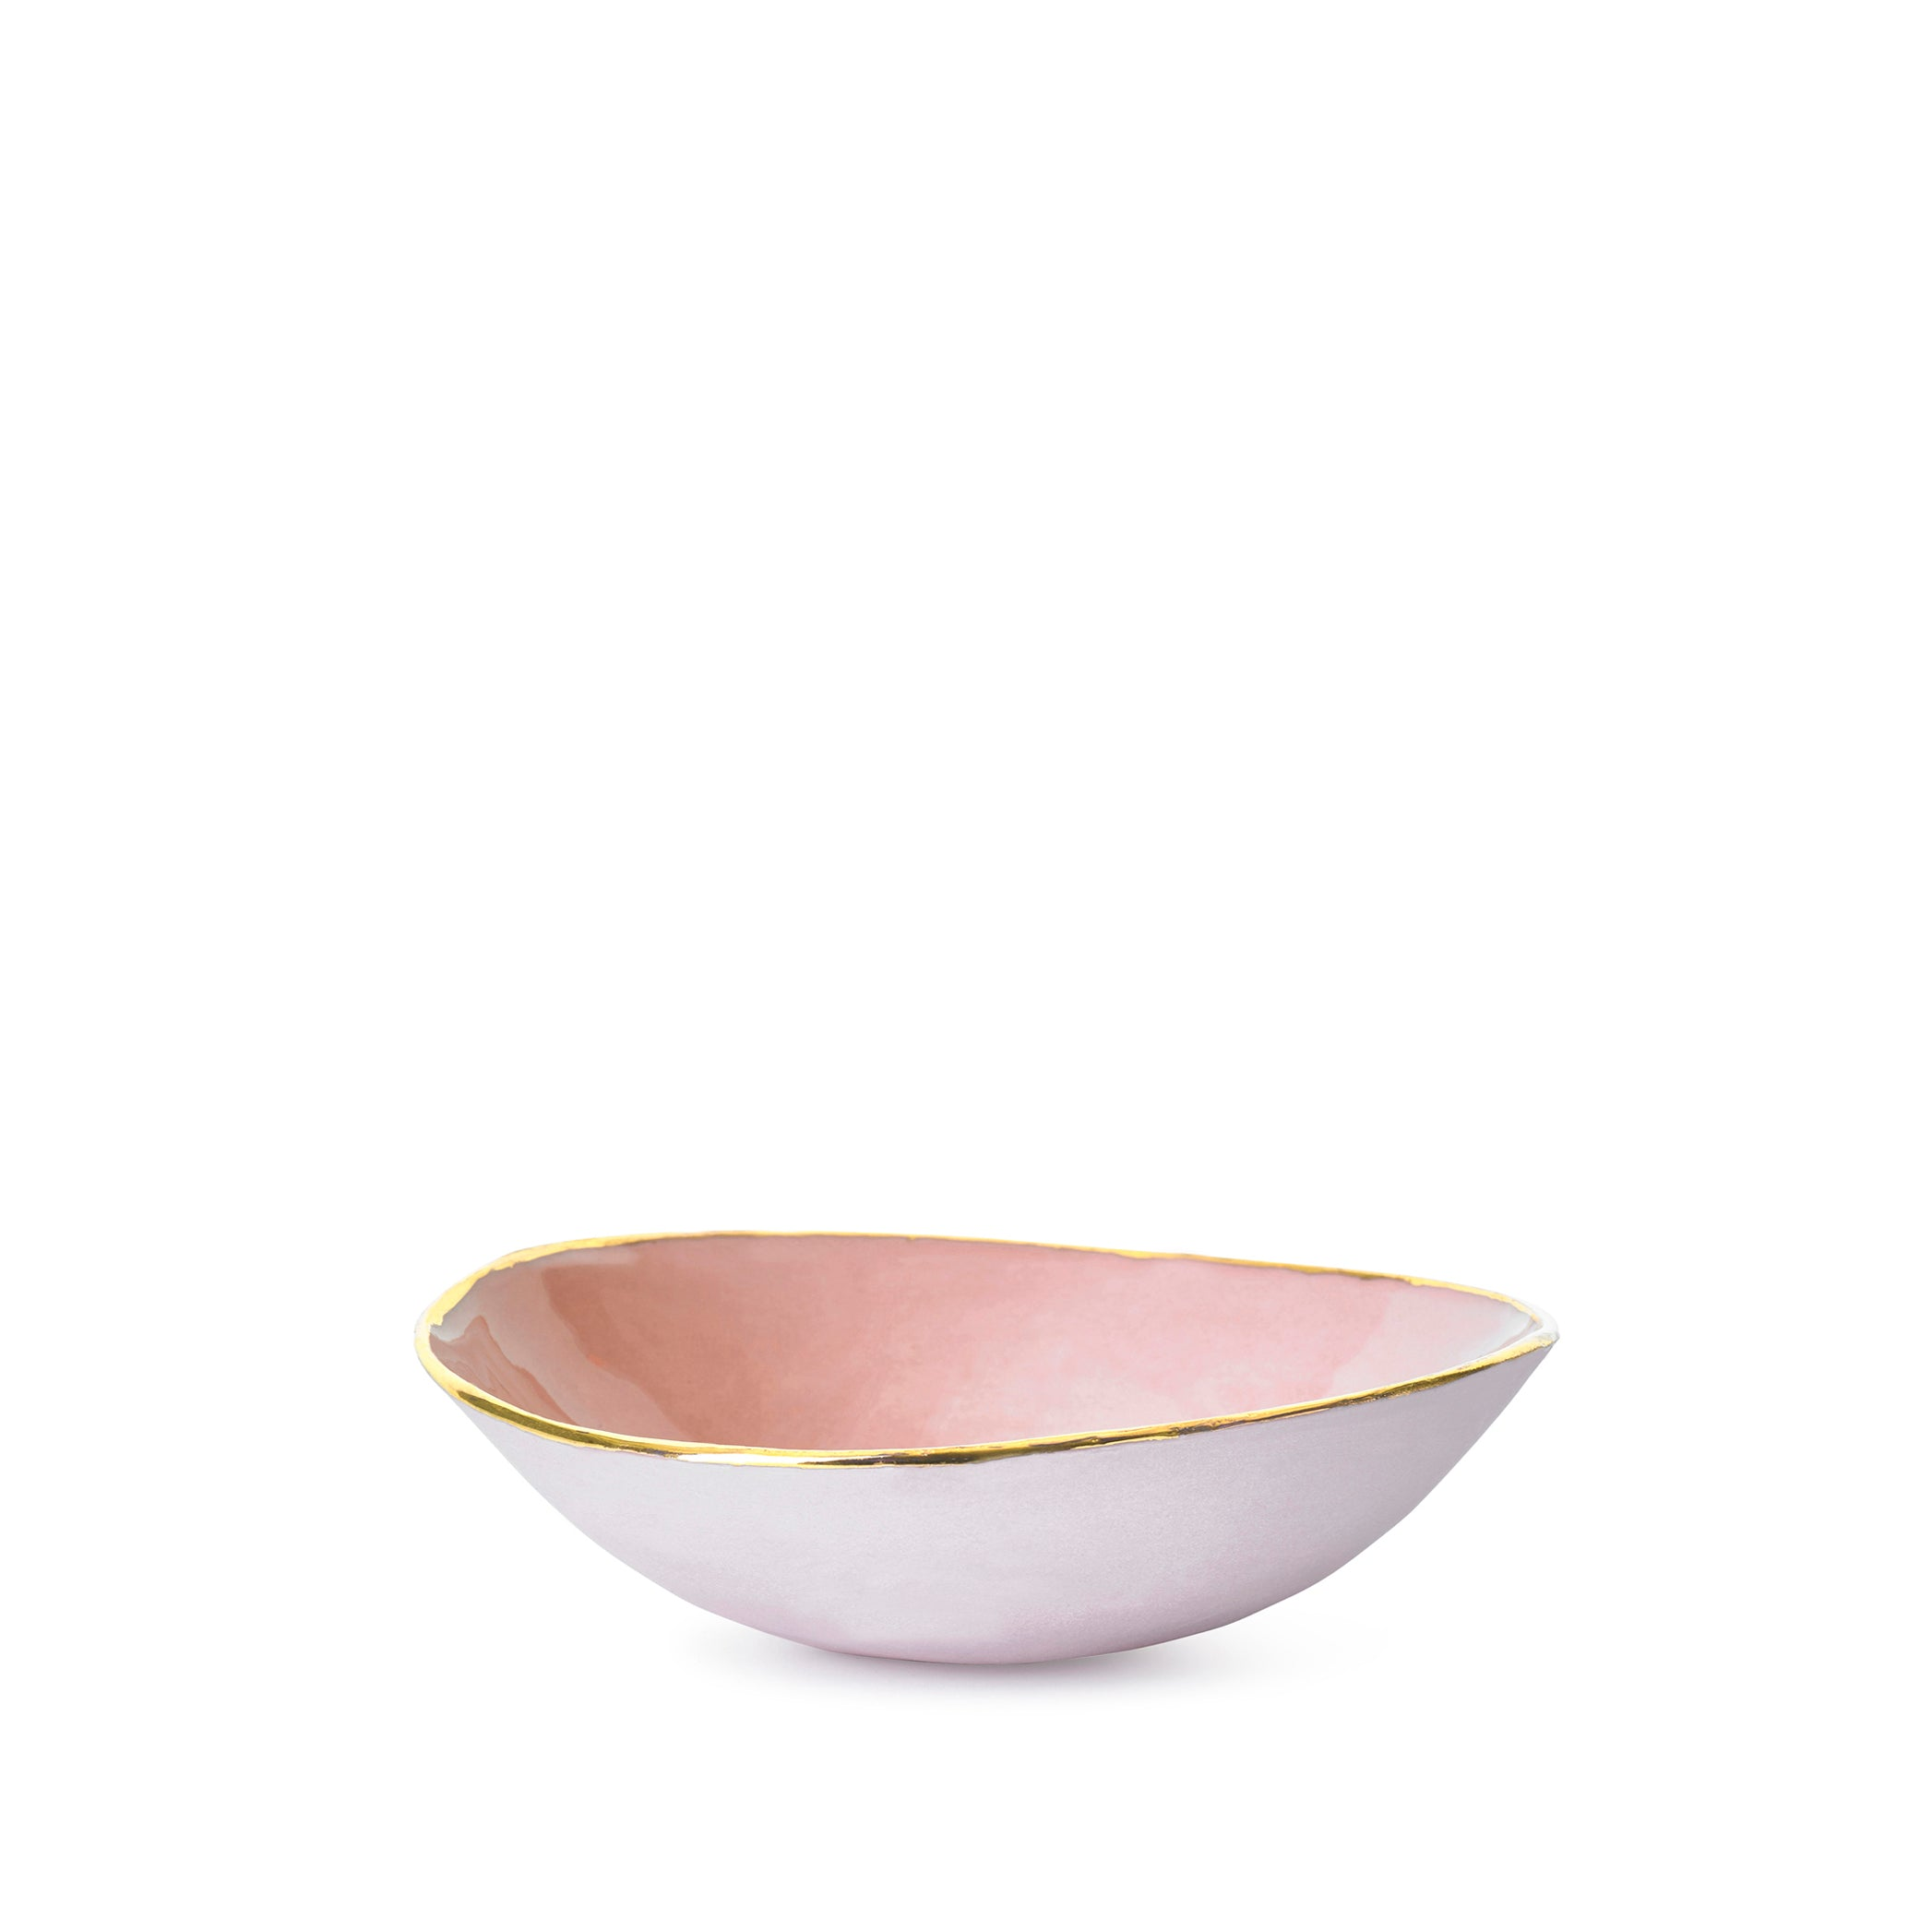 Full Painted Pink Ceramic Bowl with Gold Rim, 16cm